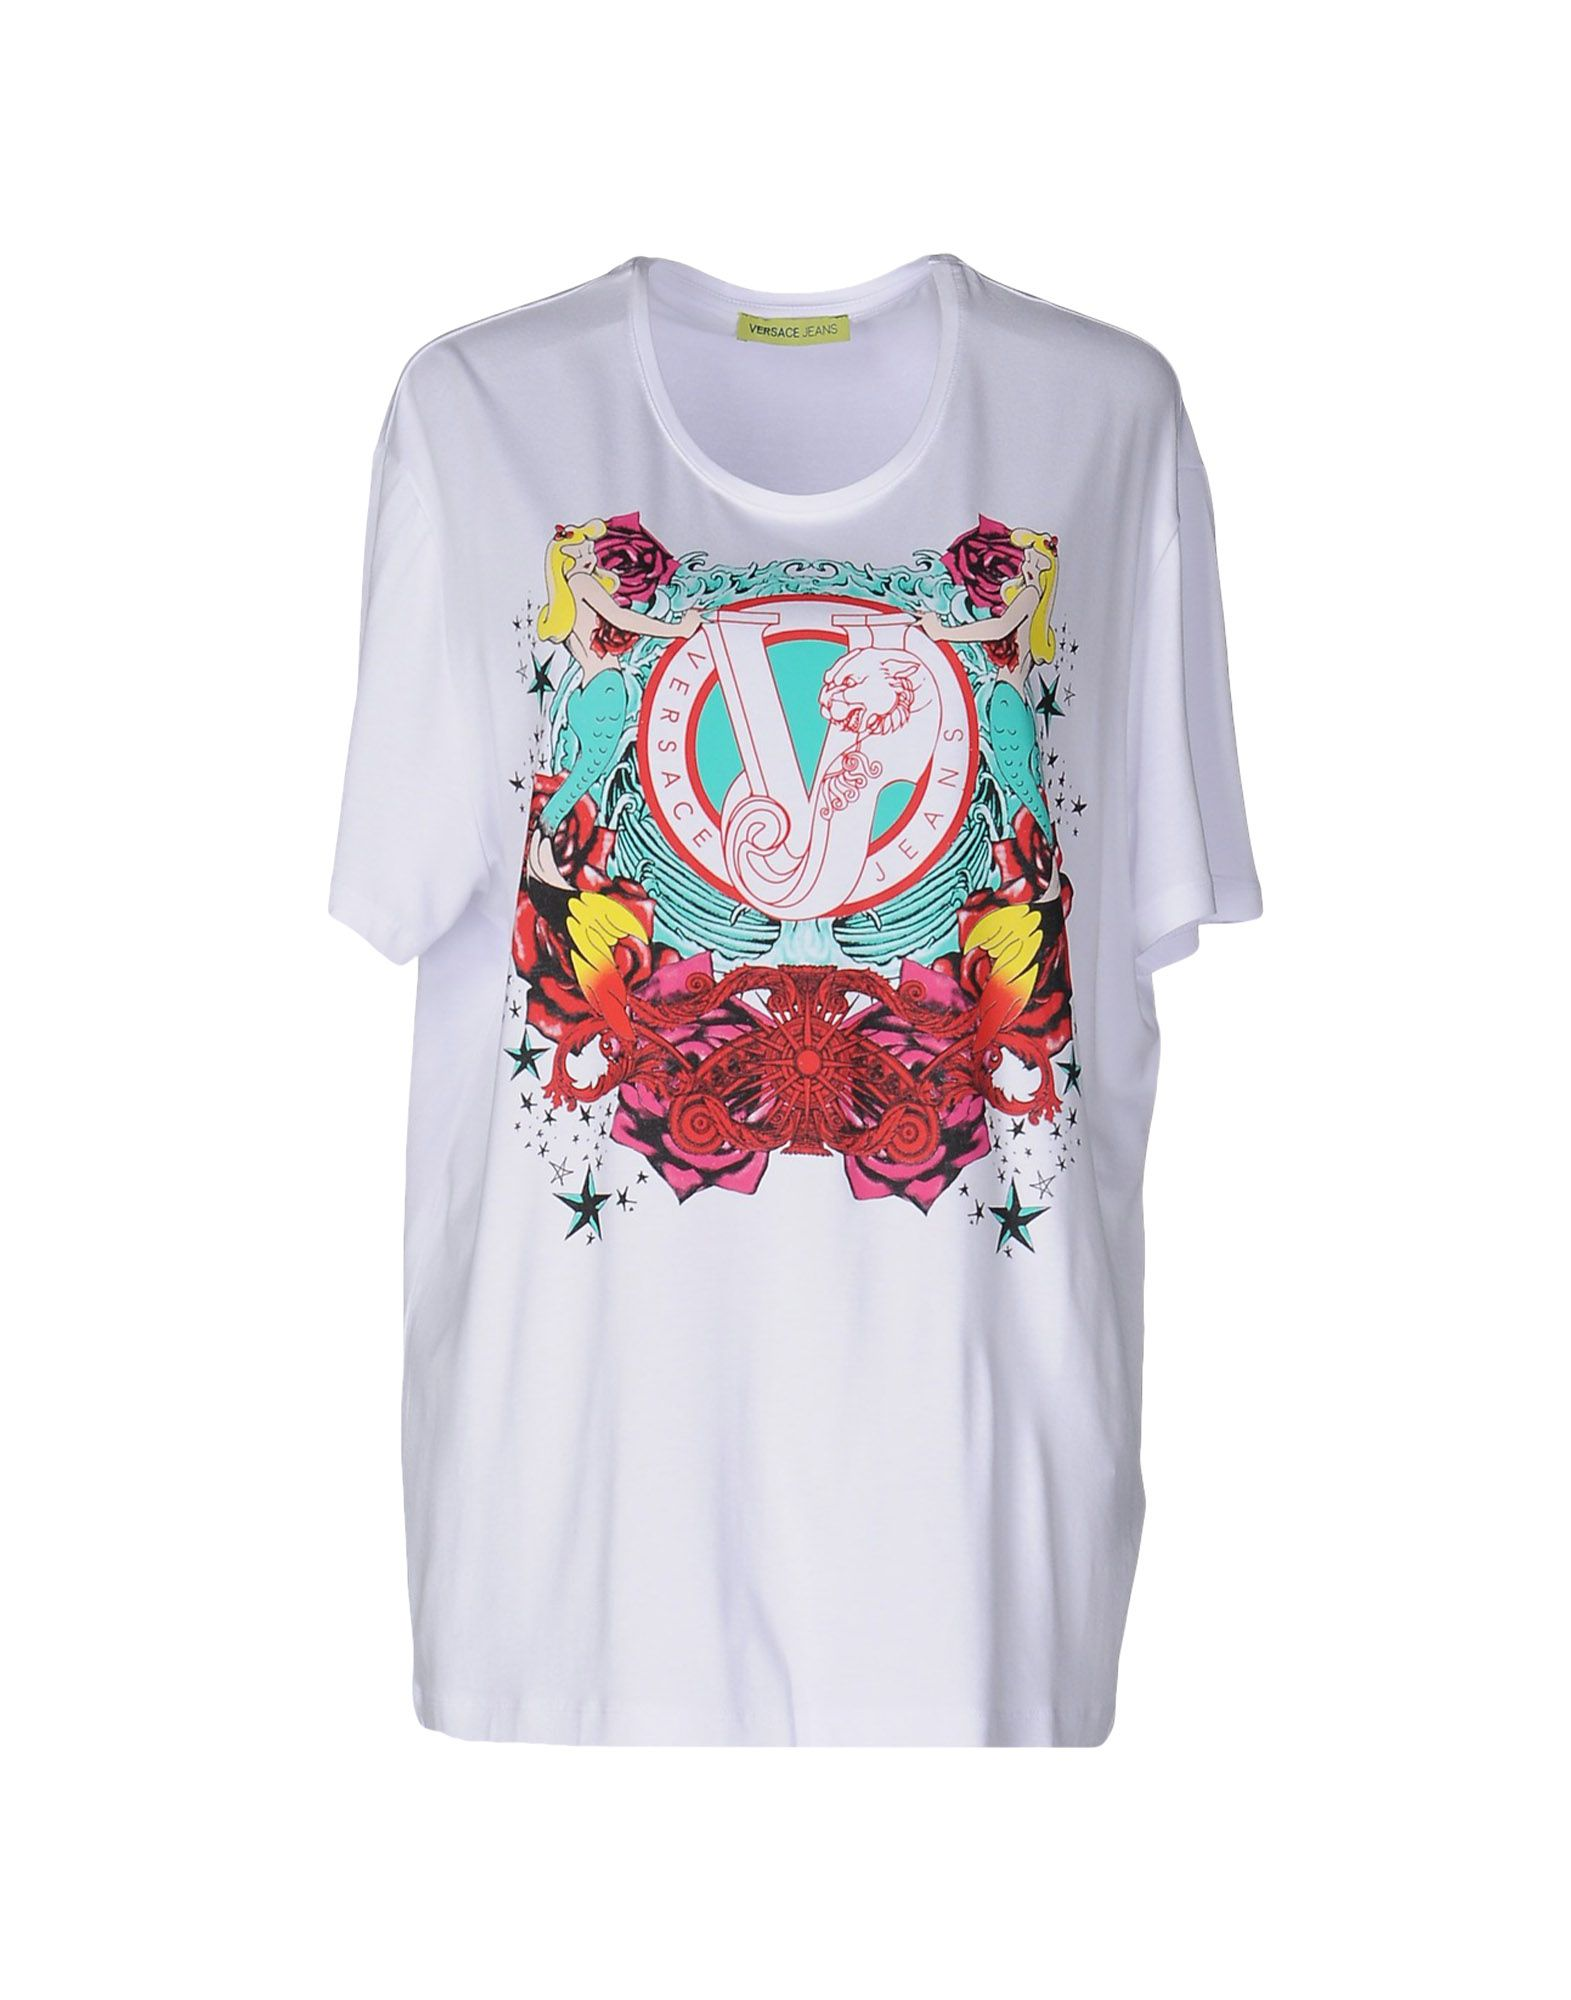 Versace Jeans T Shirt Womens - Gomes Weine AG